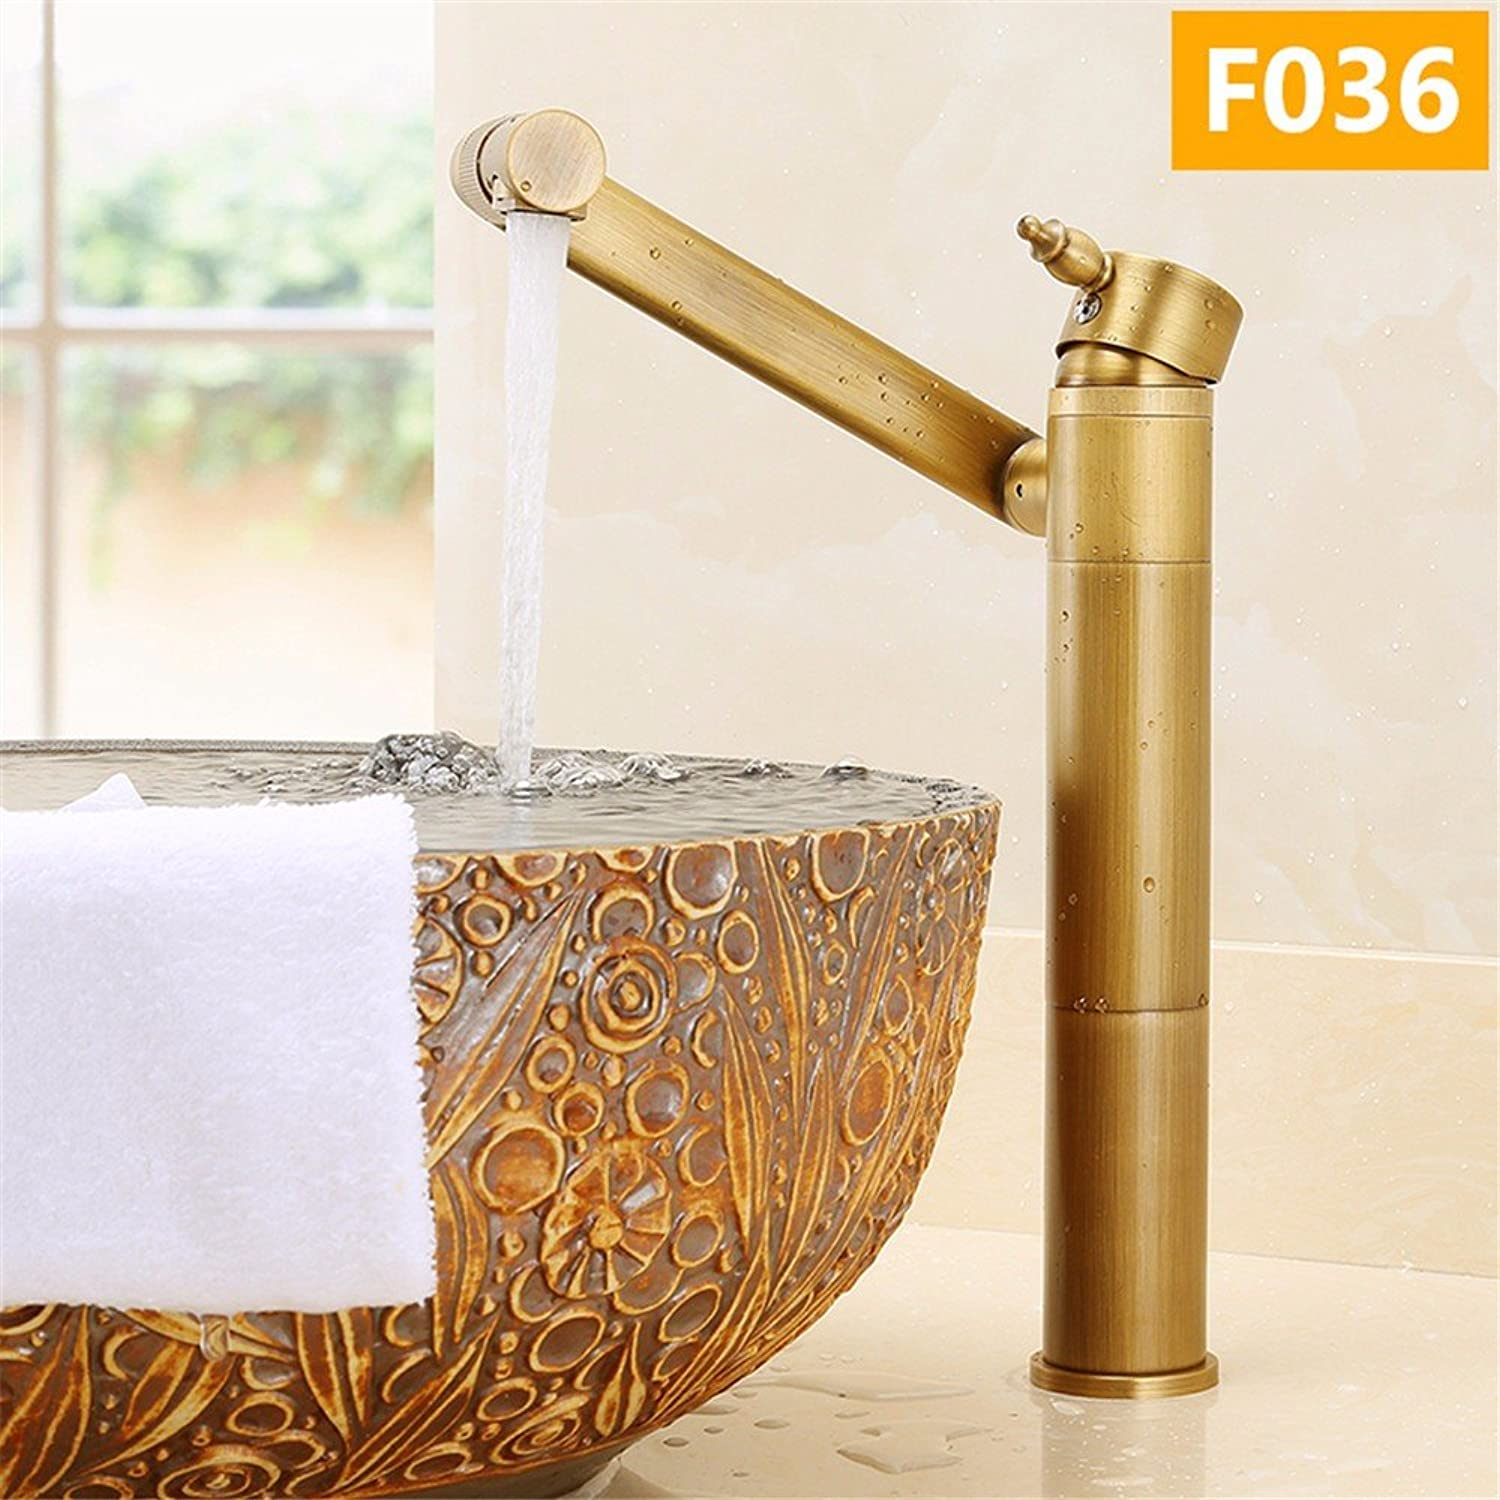 Hlluya Professional Sink Mixer Tap Kitchen Faucet The copper basin cold water tap can be 360 degree redating black-plated antique Vanity basin mixer